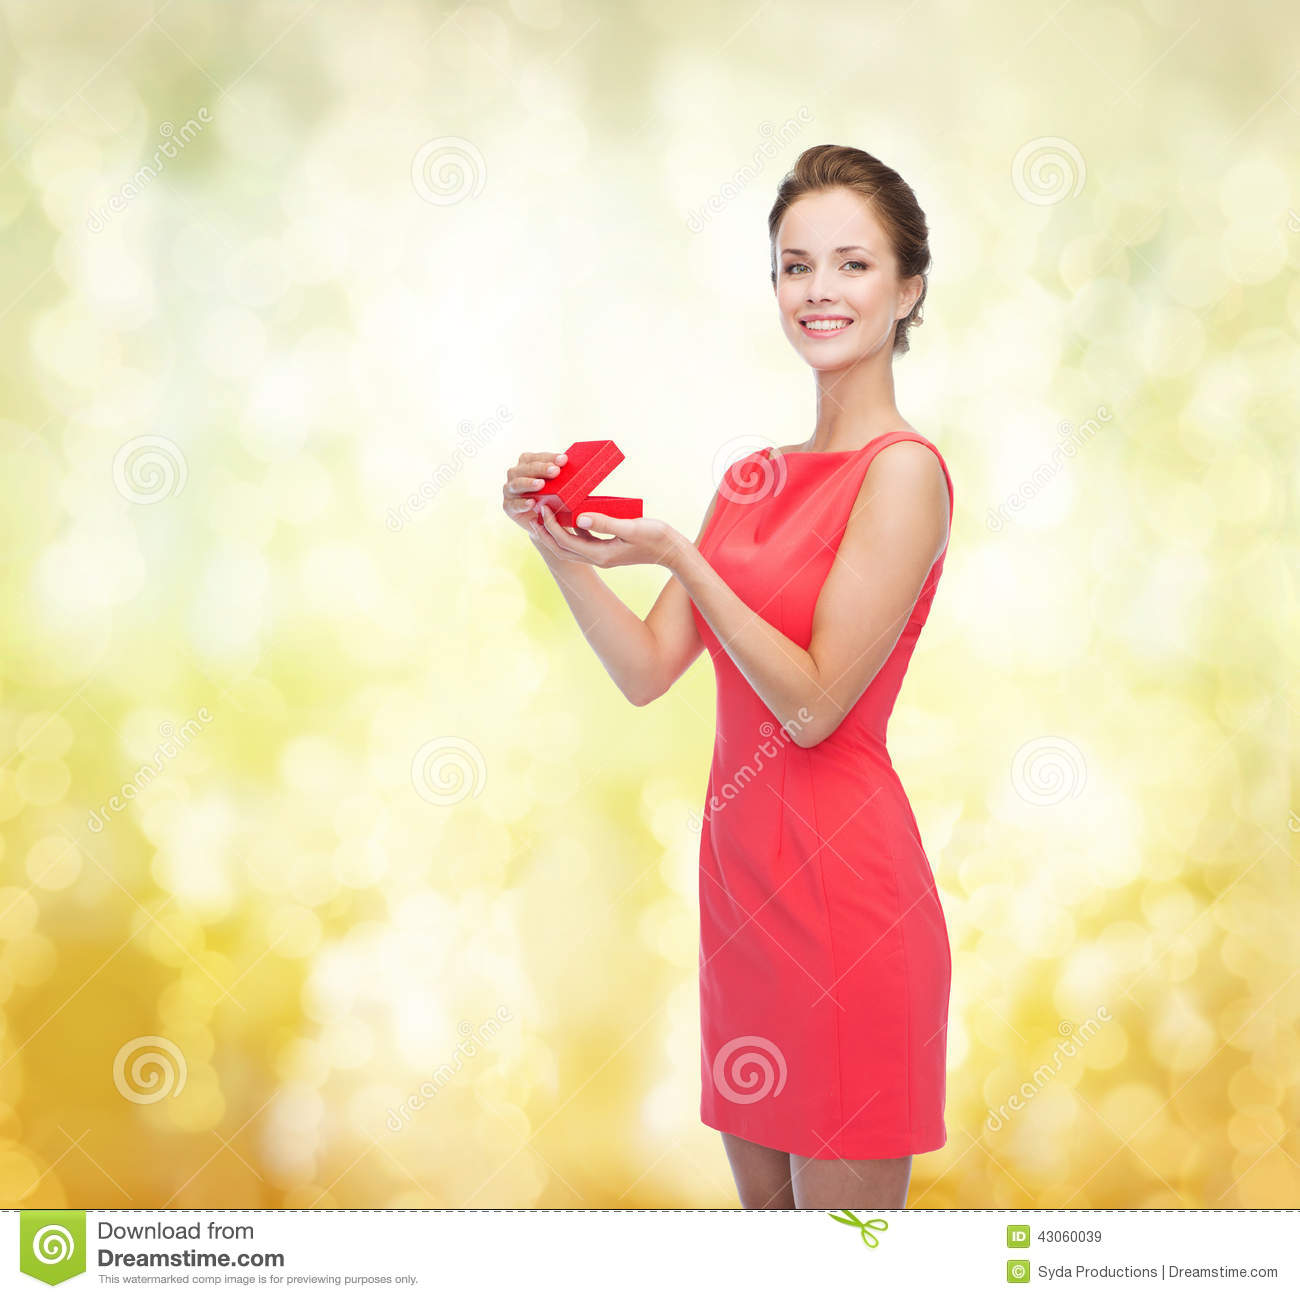 Celebration concept smiling young woman in red dress with gift box